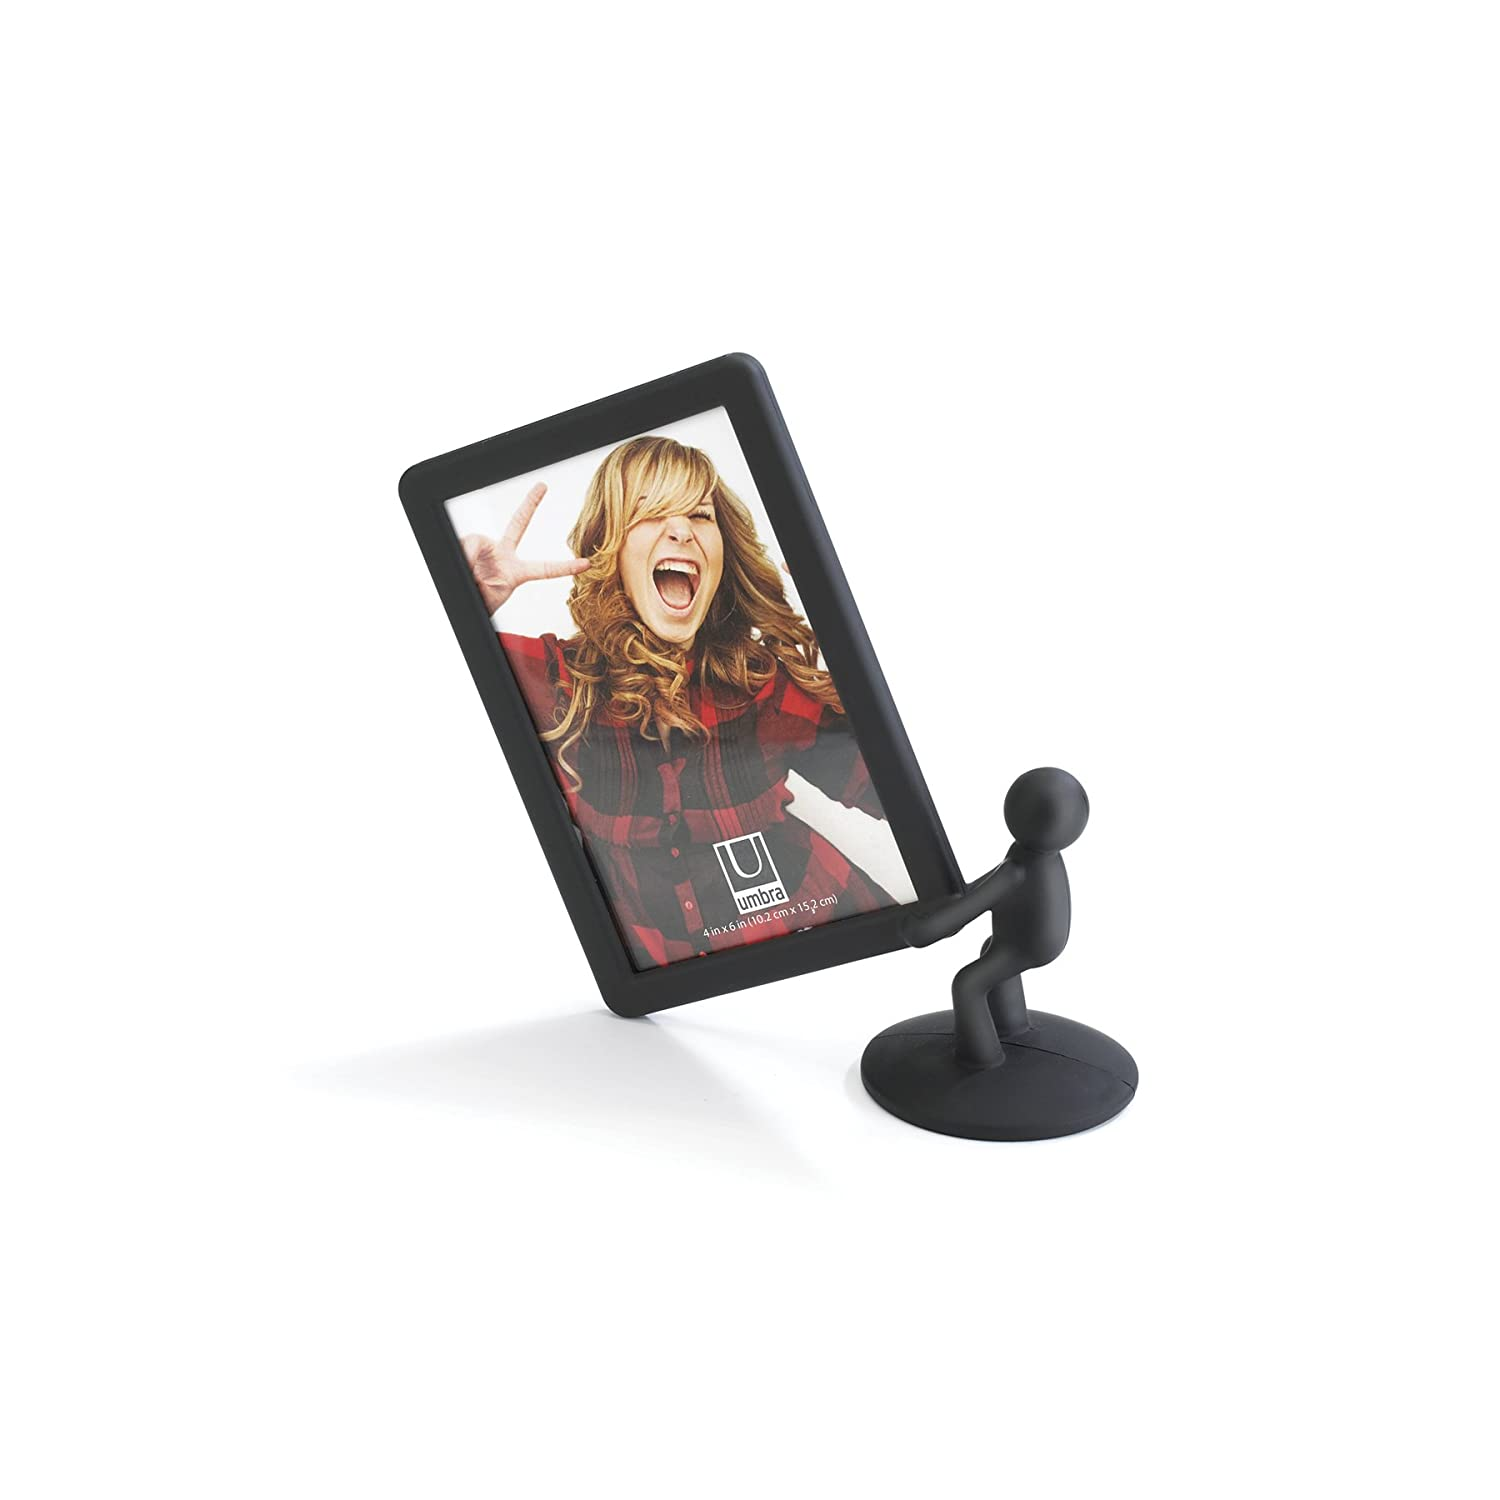 Amazon.com - Umbra Hercules 4-by-6-Inch Picture Frame, Vertical ...